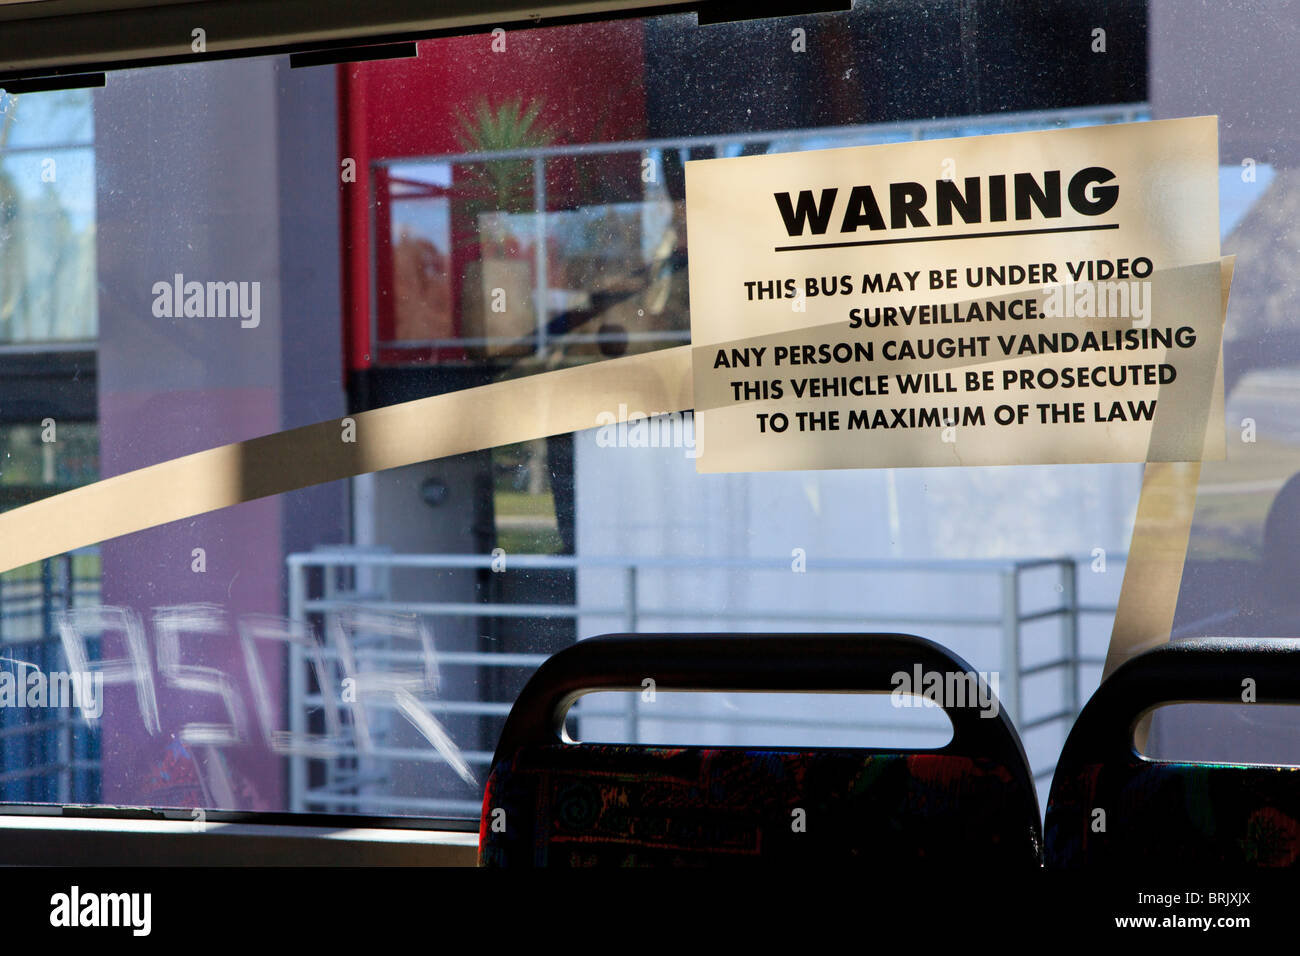 Video surveillance warning that all vandalism will be prosecuted next to graffiti scratched into the bus window - Stock Image